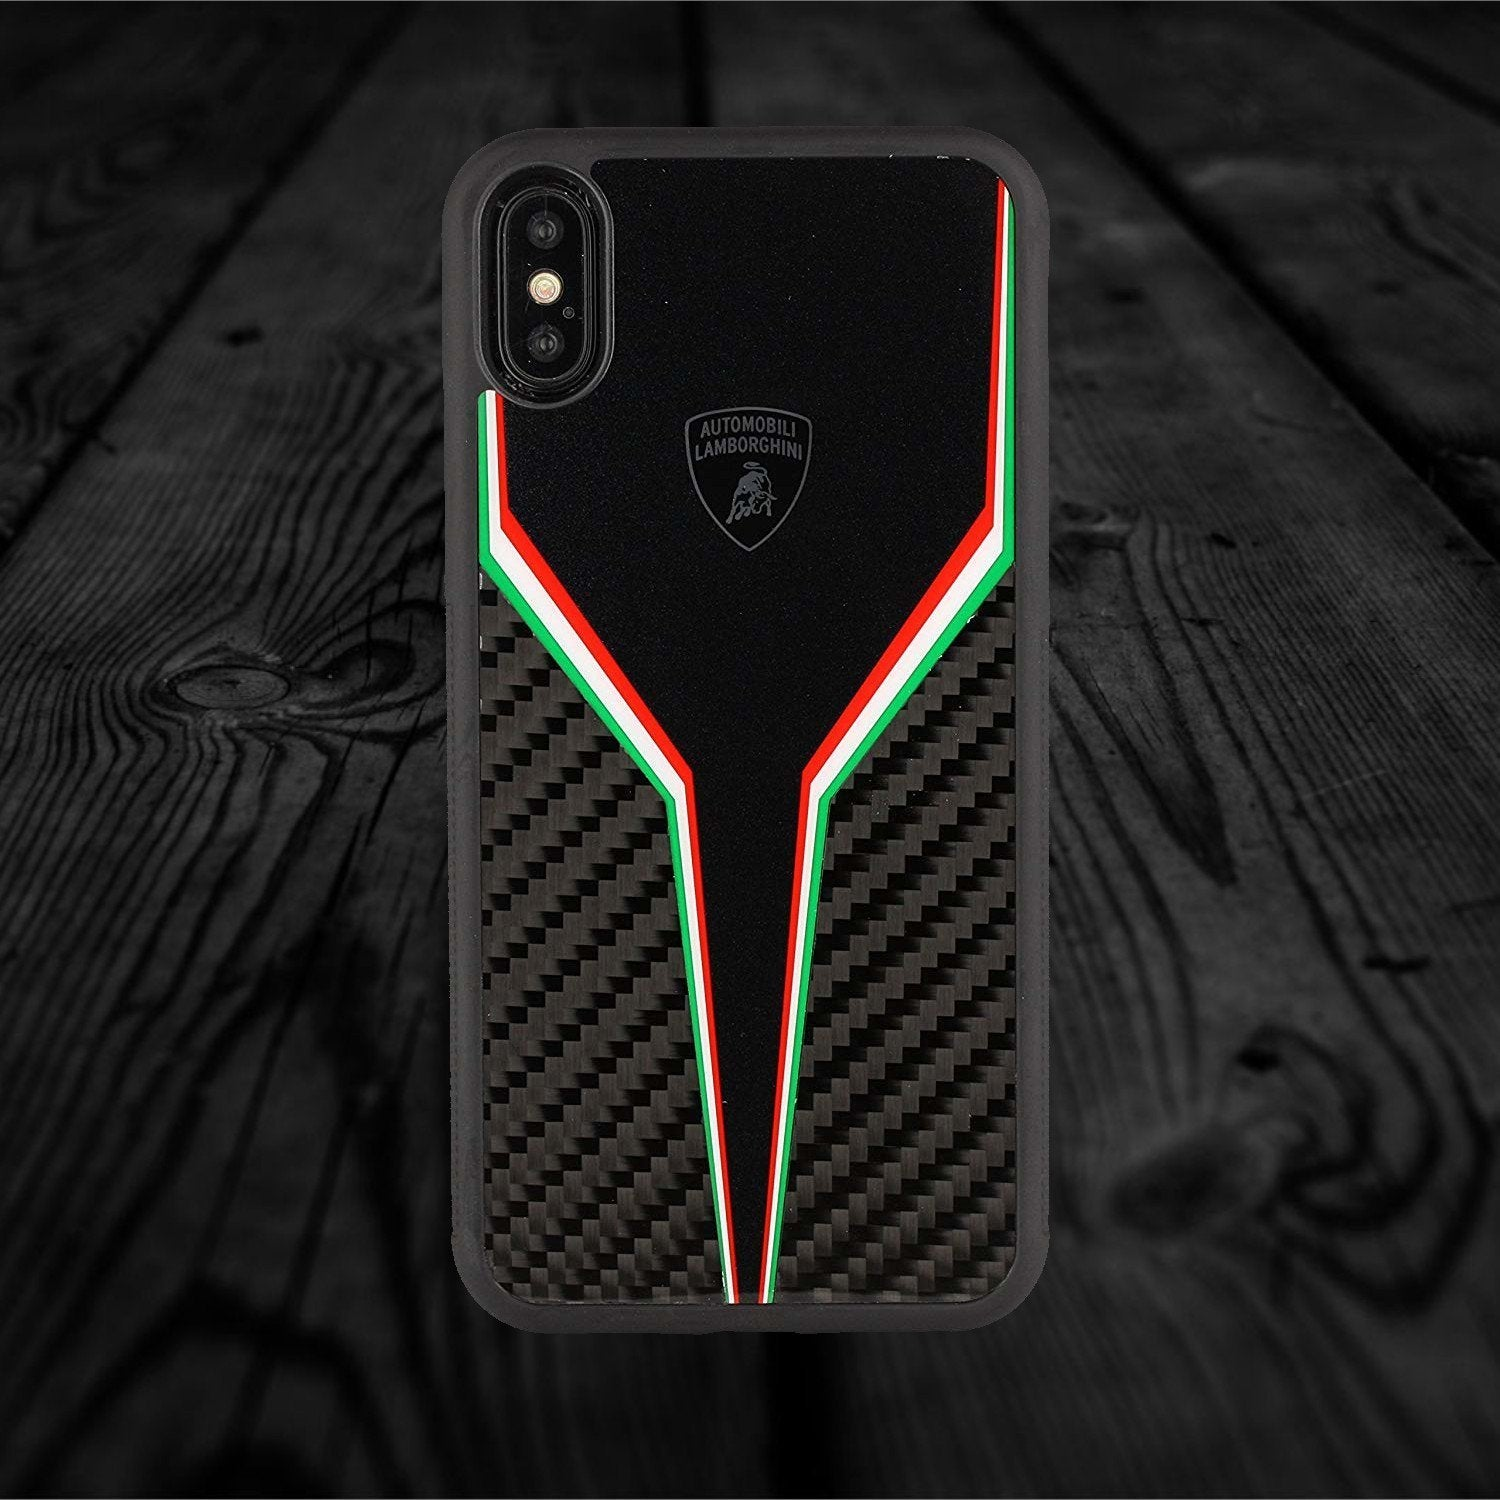 Lamborghini SC D2 Carbon Fiber Limited Edition Case For iPhone XS Max - Planetcart